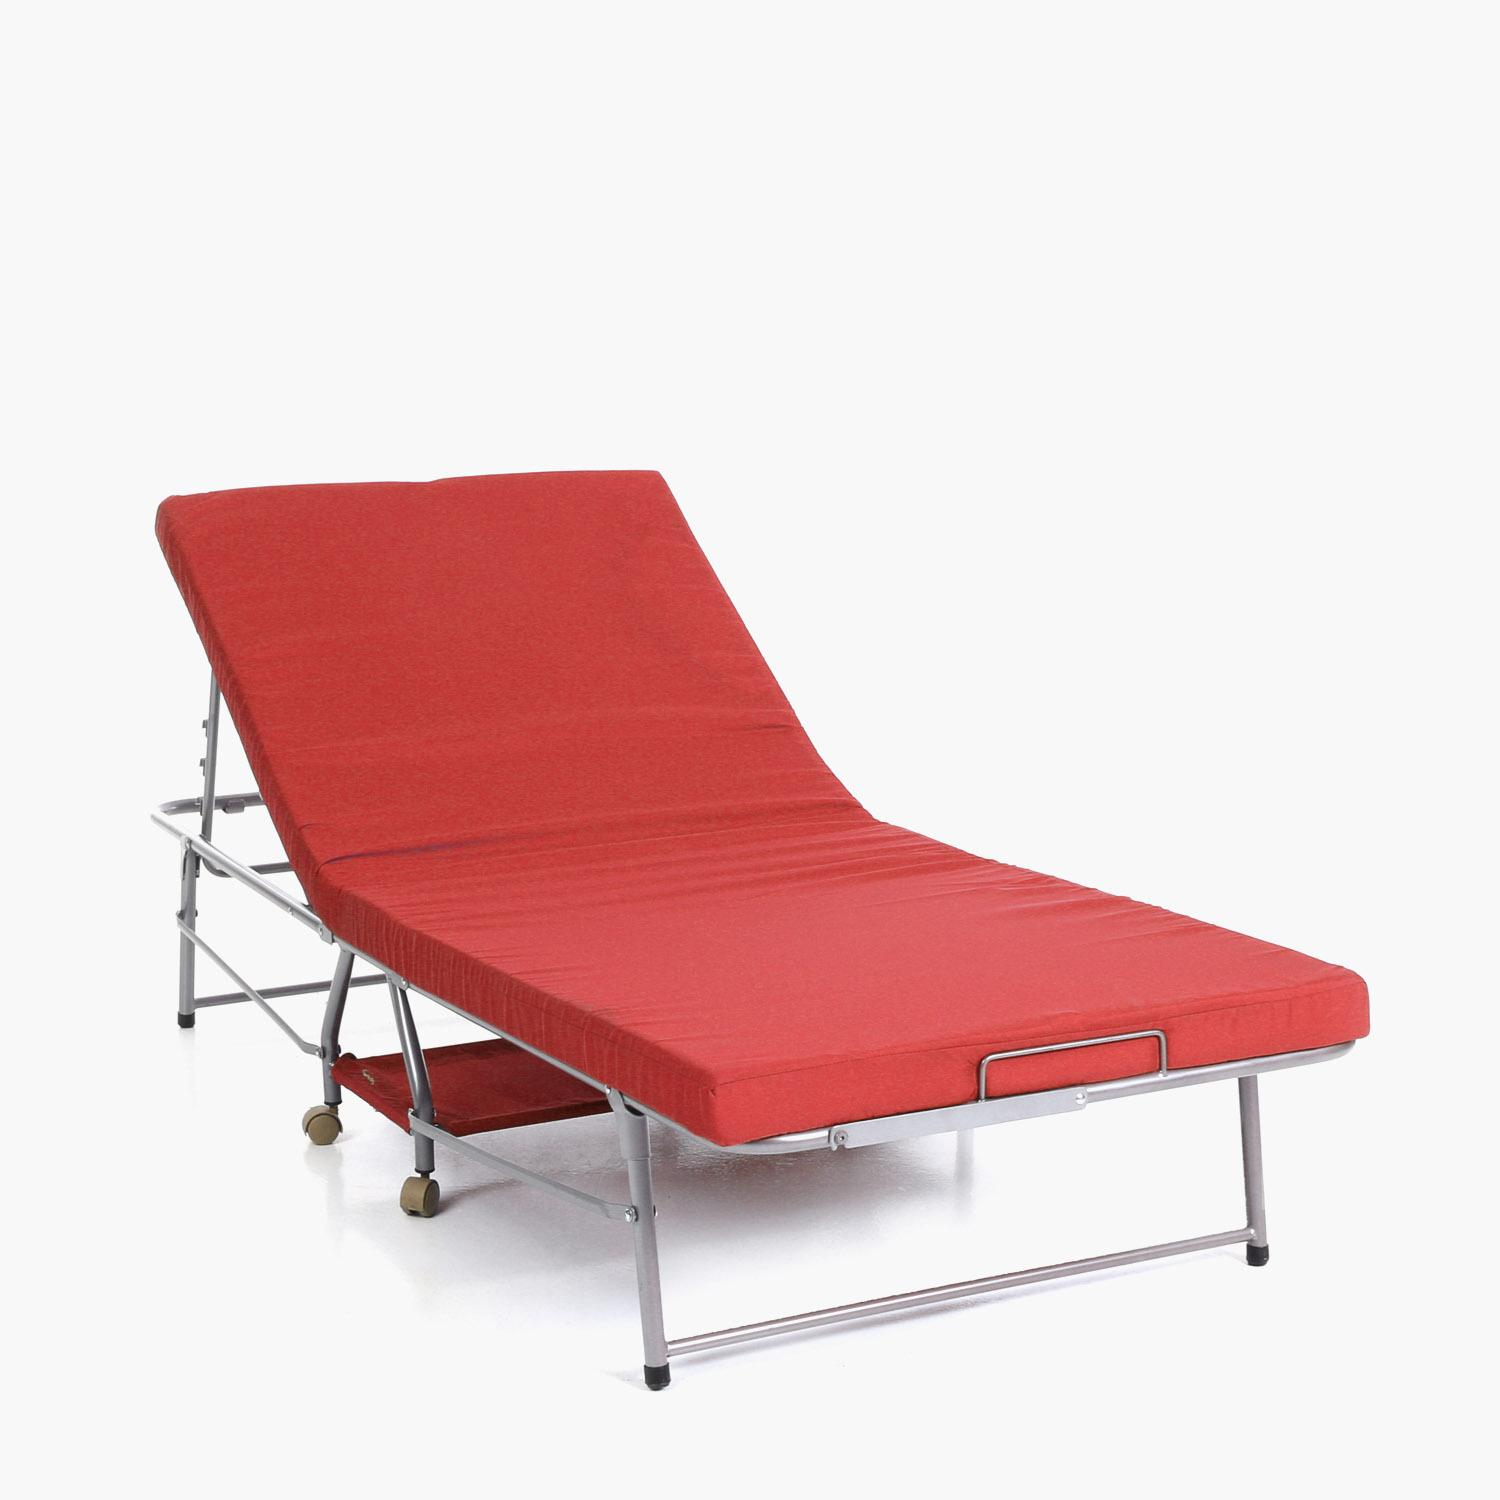 Sm Home Chateaux Folding Bed Red Price Philippines Info